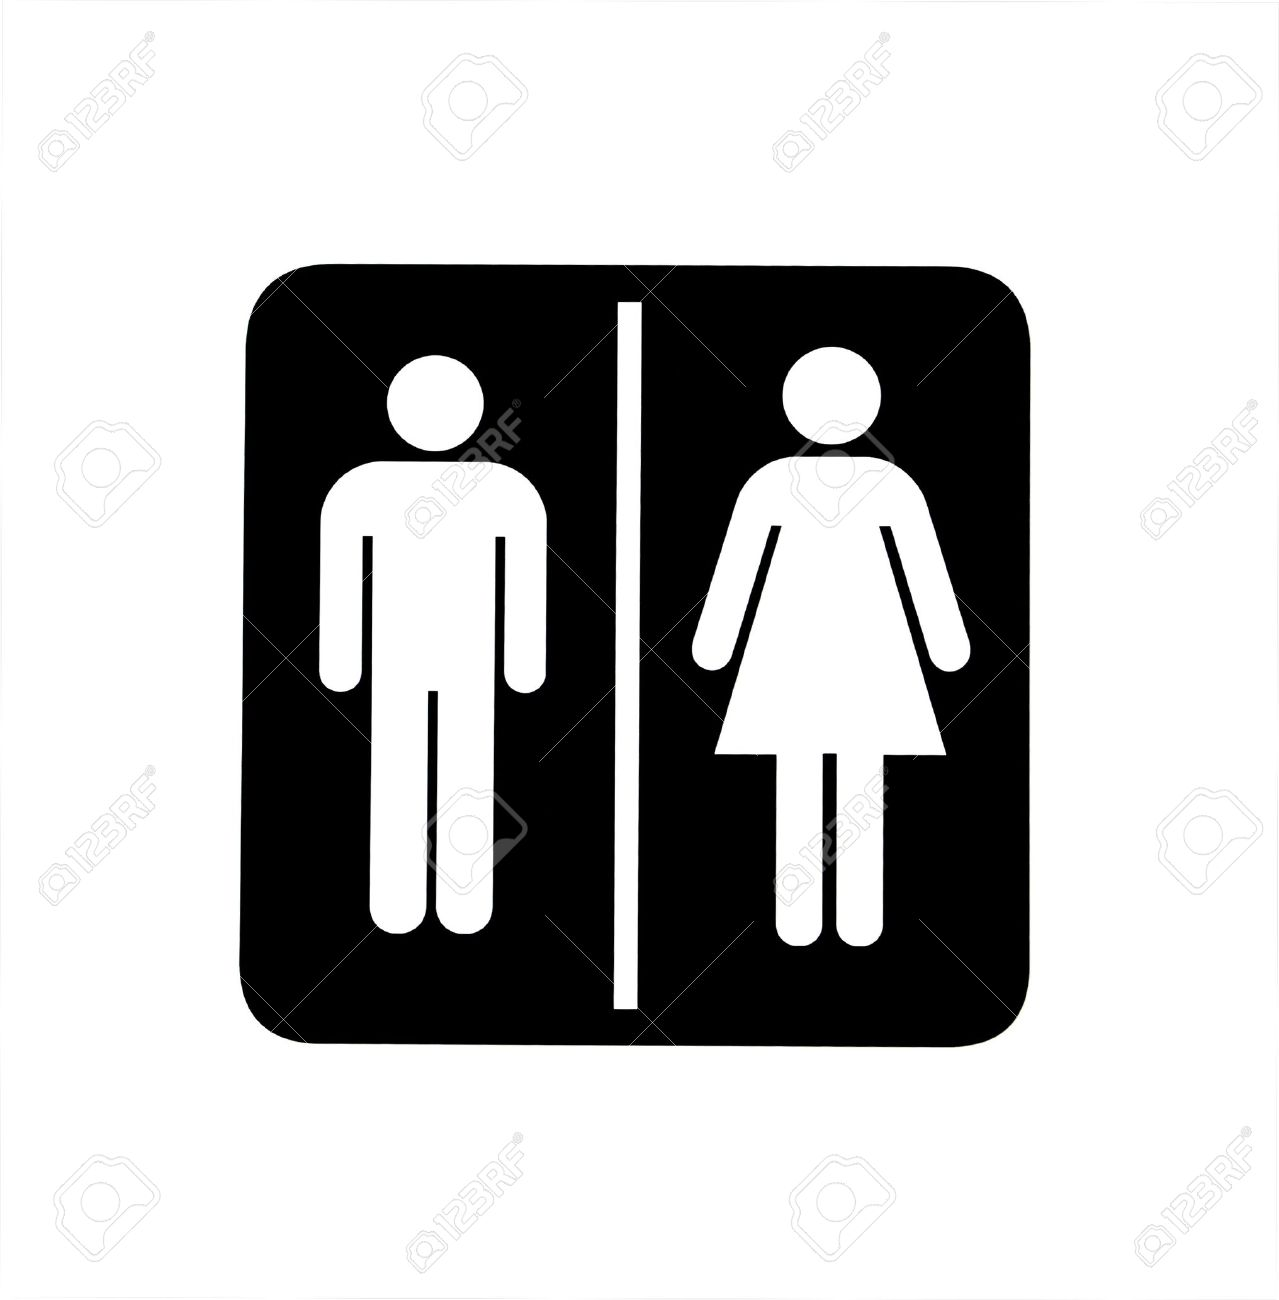 Man woman bathroom symbol my web value sign indicating women and men toilets stock photo 9811424 sign indicating women and men toilets biocorpaavc Choice Image